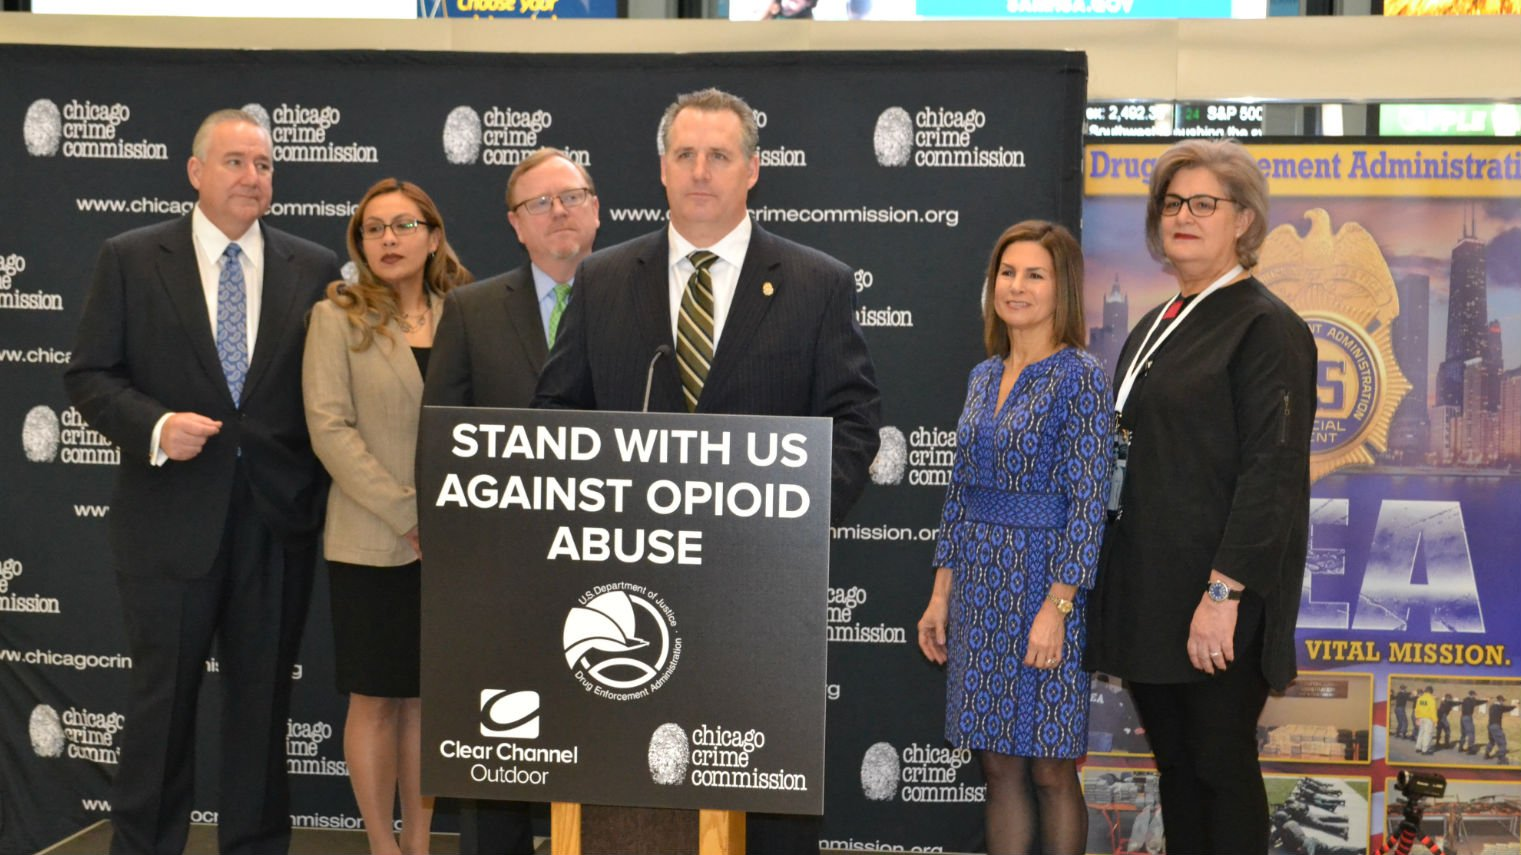 DEA Launches Digital Billboard Campaign Against Opioid Use